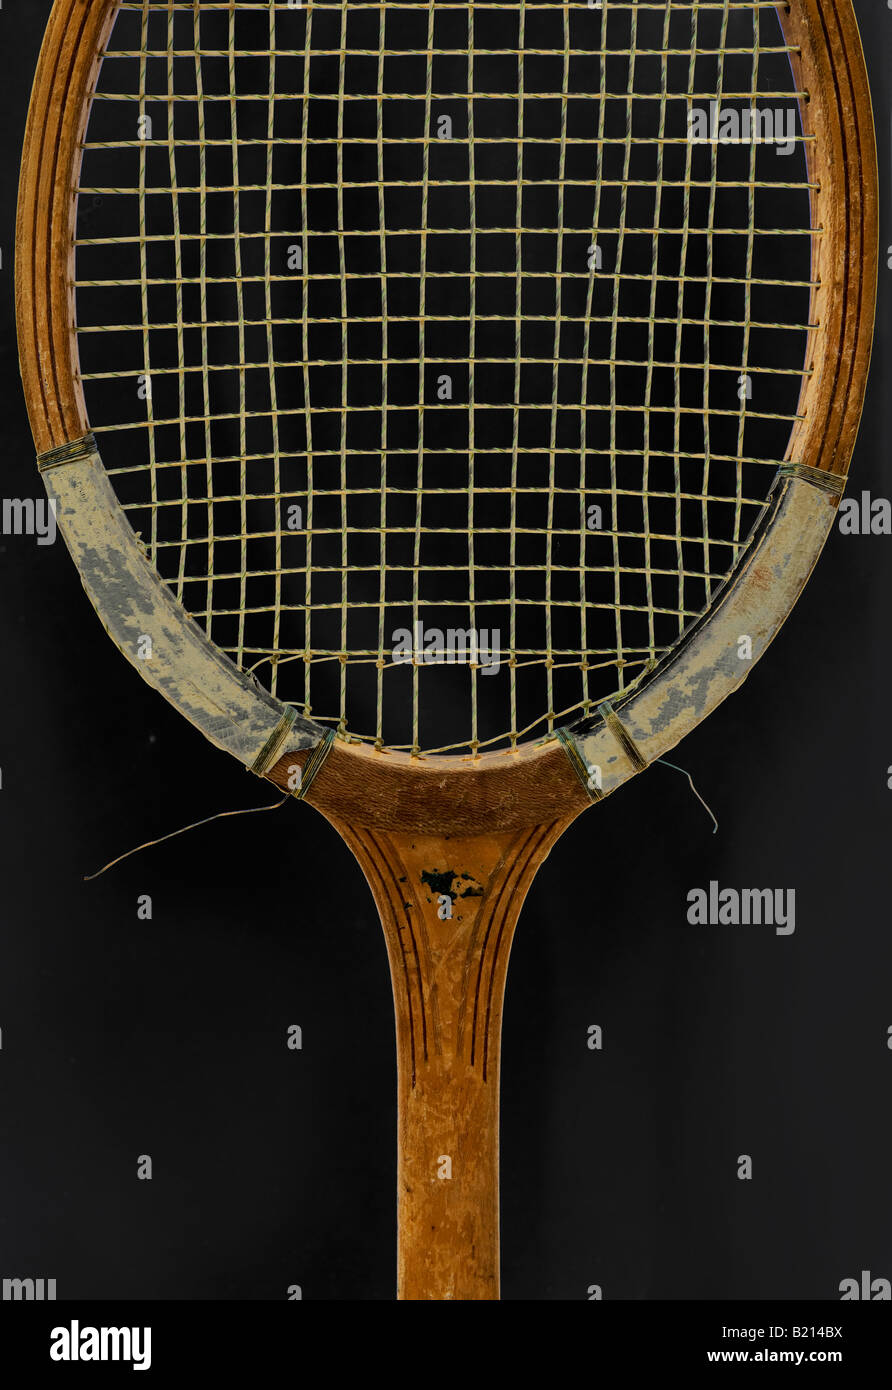 Vintage tennis racket shot against a black background - Stock Image